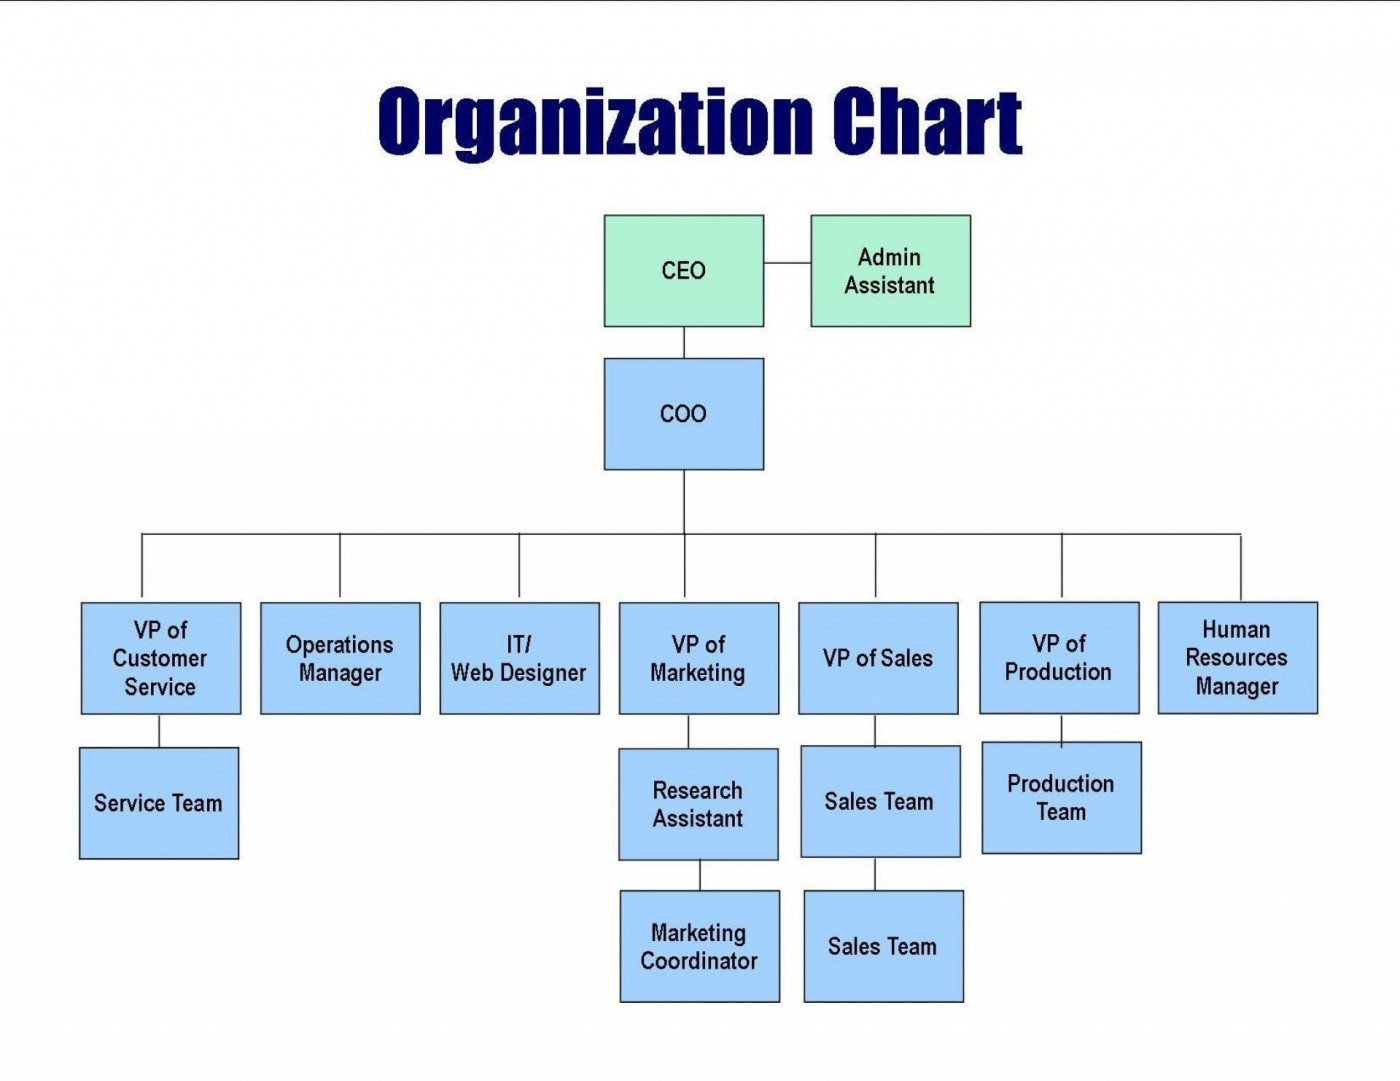 009 Unbelievable Organization Chart Template Word 2013 Photo  Organizational Microsoft In1400